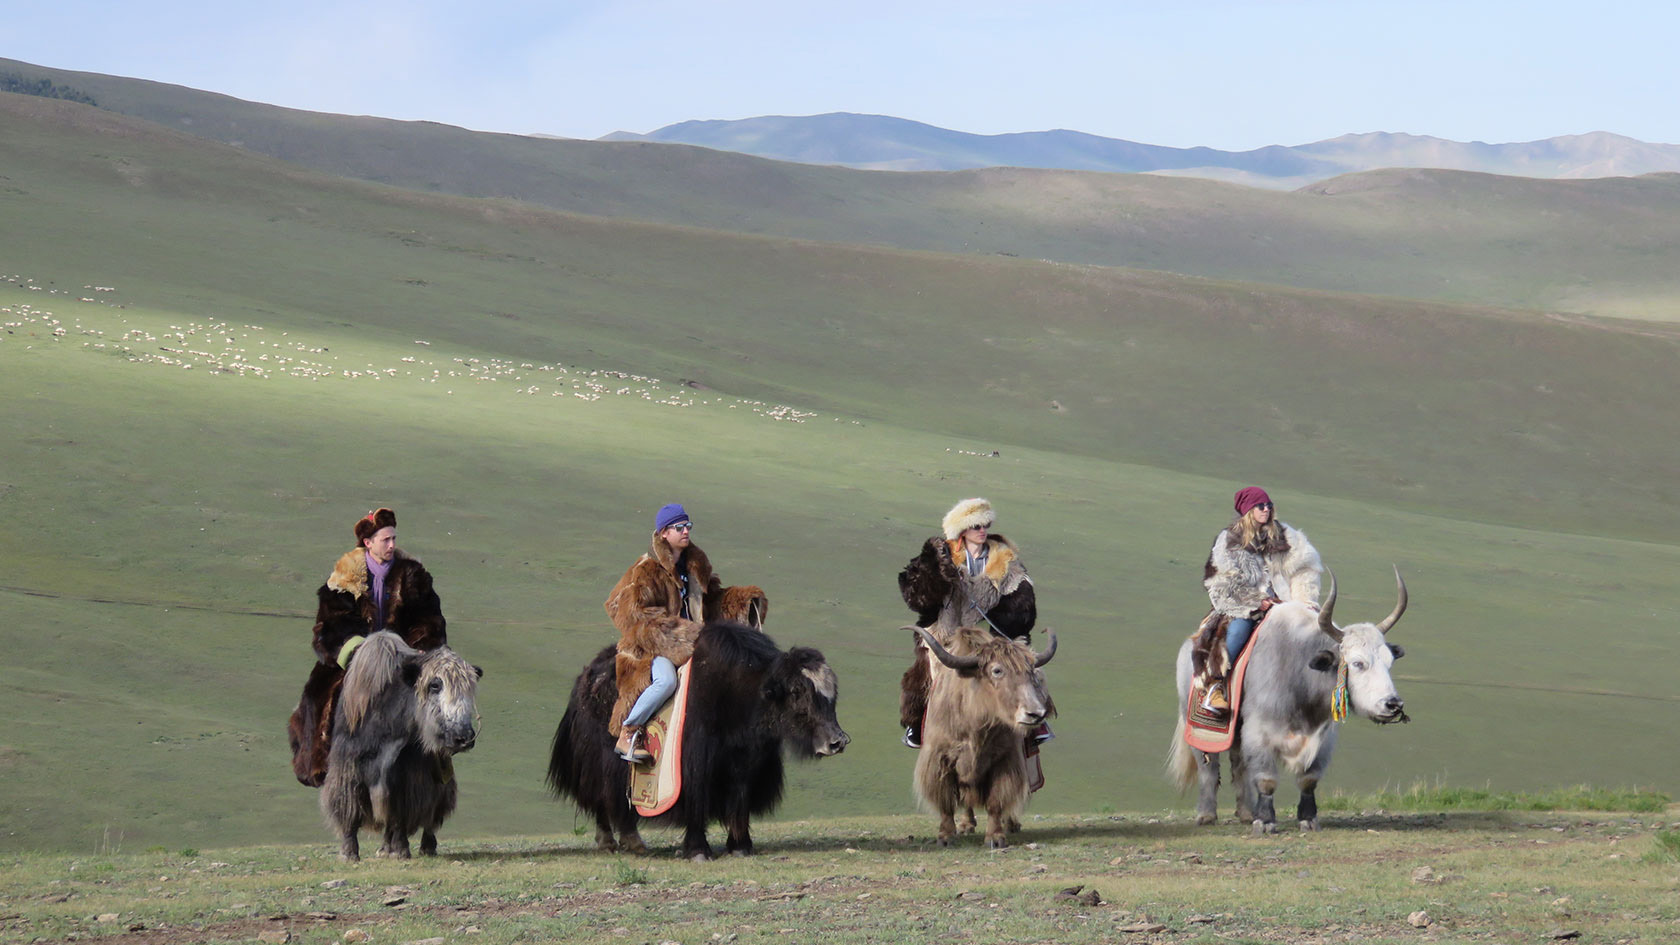 RIDING YAKS IN COSTUME IN MONGOLIA